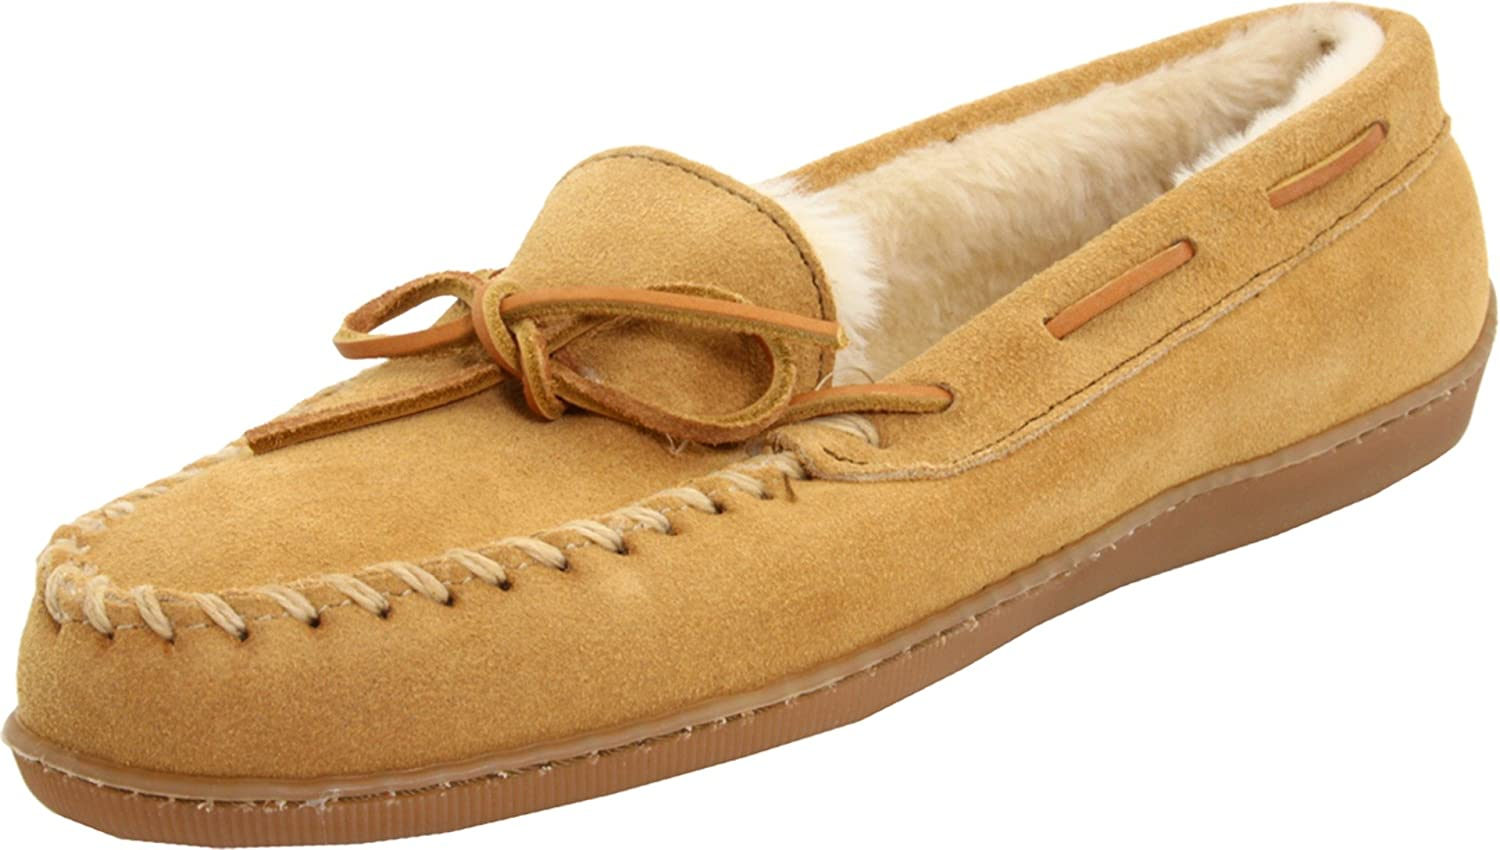 Minnetonka Women's Hardsole Pile Lined Slipper